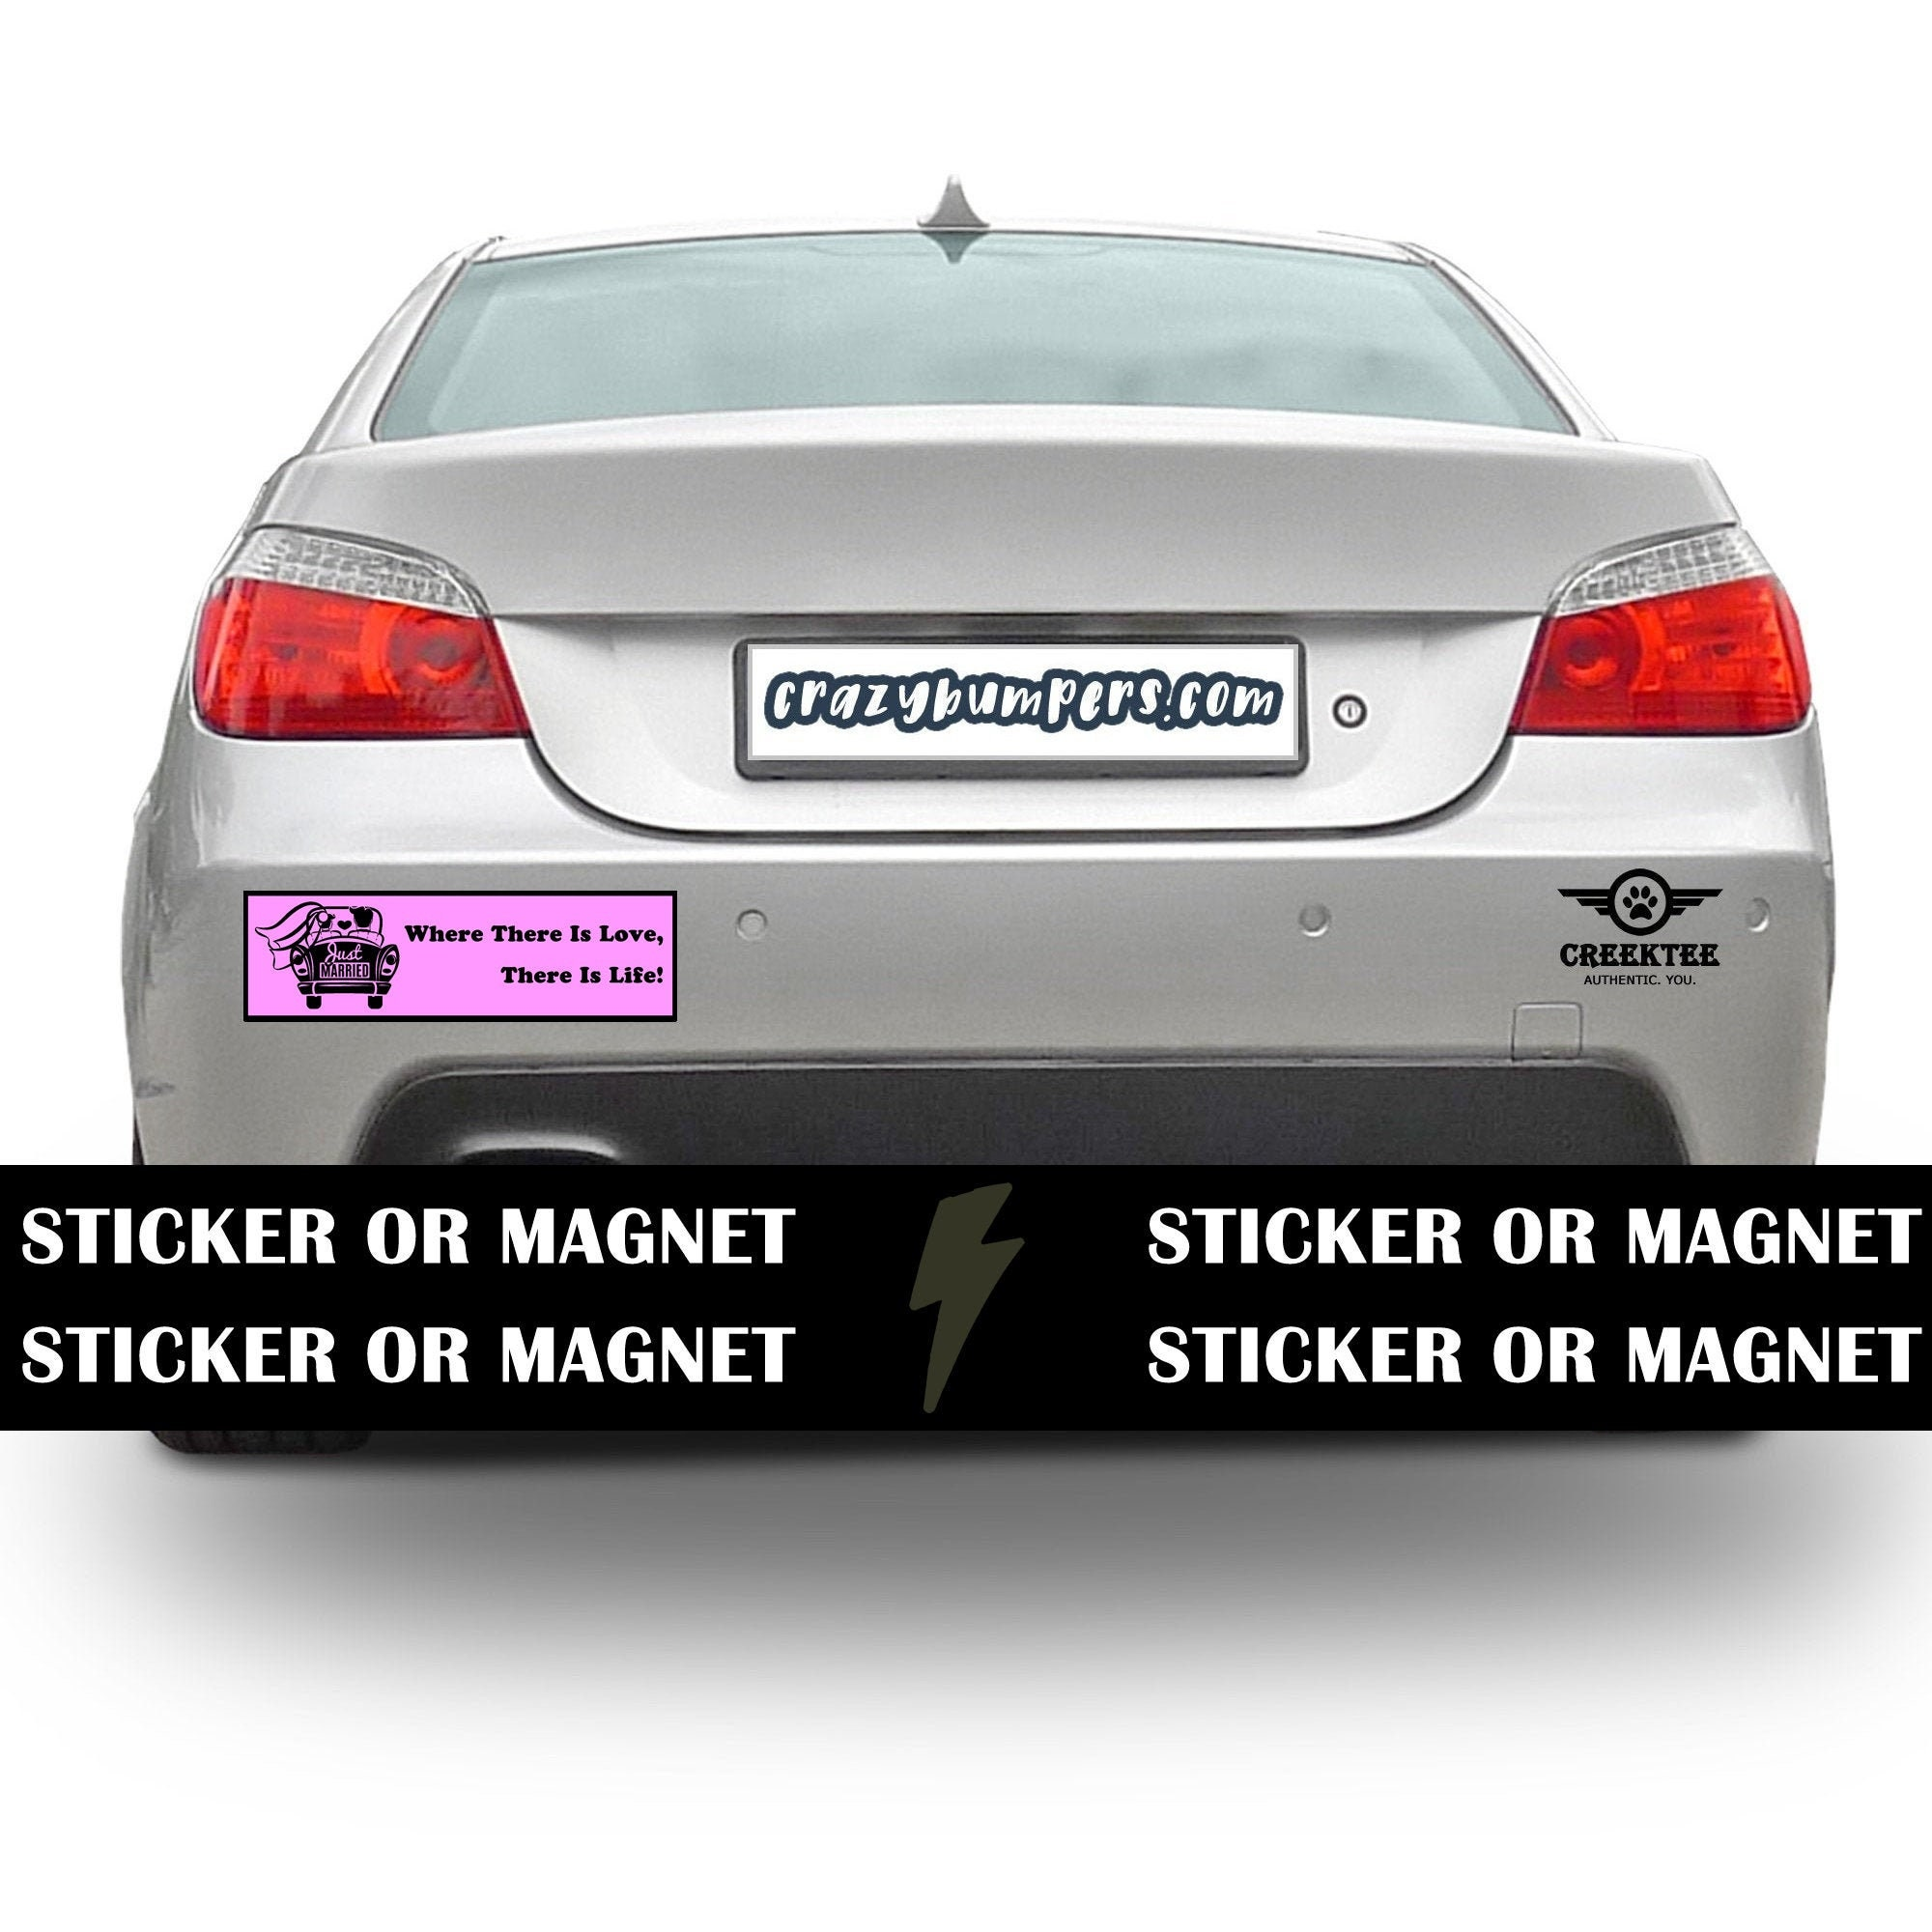 CAD$9.74 - Just Married Bumper Sticker 10 x 3 Bumper Sticker or Magnetic Bumper Sticker Available - Custom changes and orders welcomed!